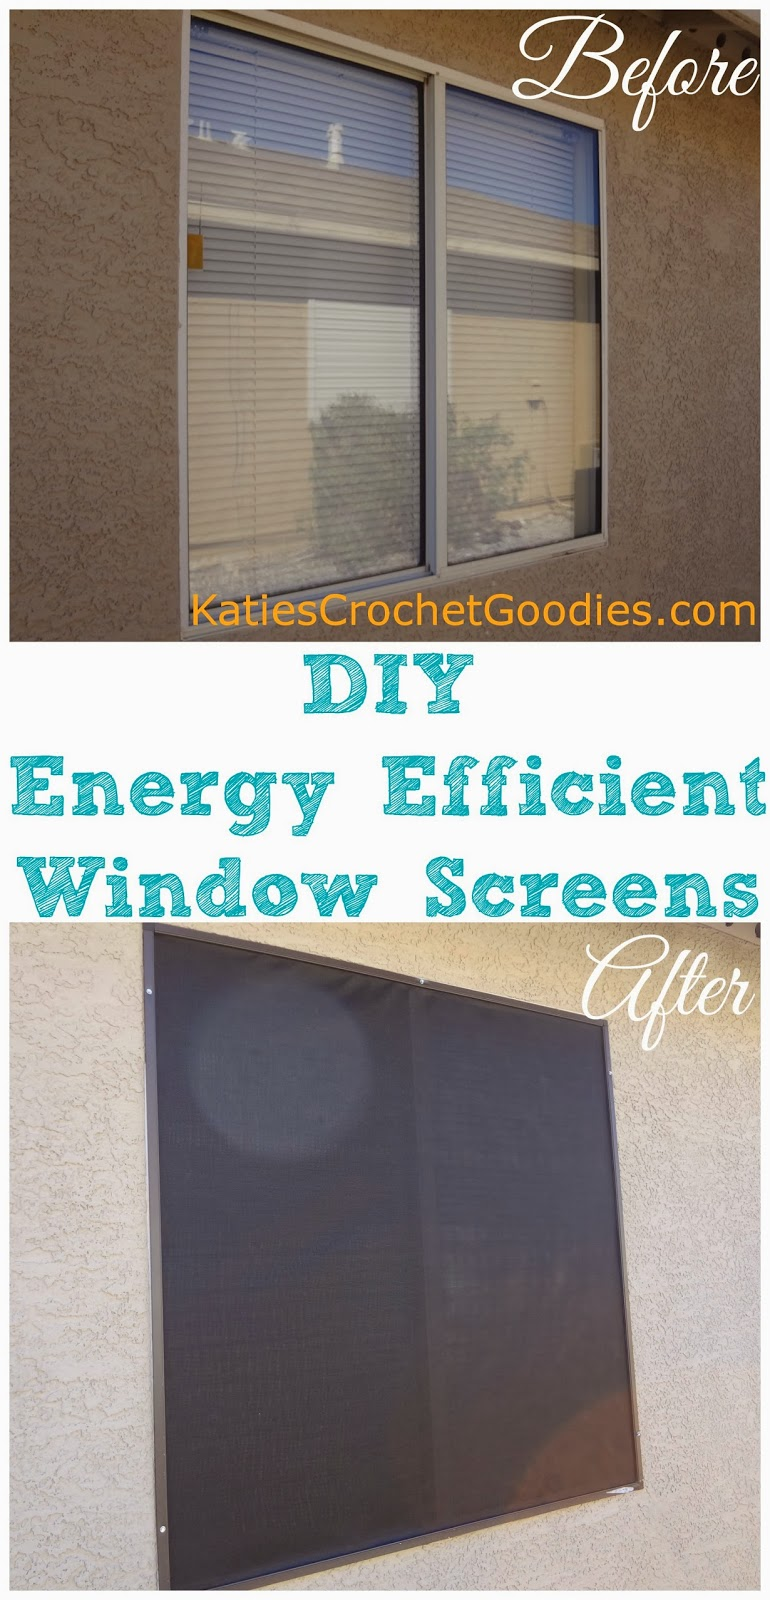 Diy energy efficient window screens katie 39 s crochet goodies - The basics about energy efficient windows ...